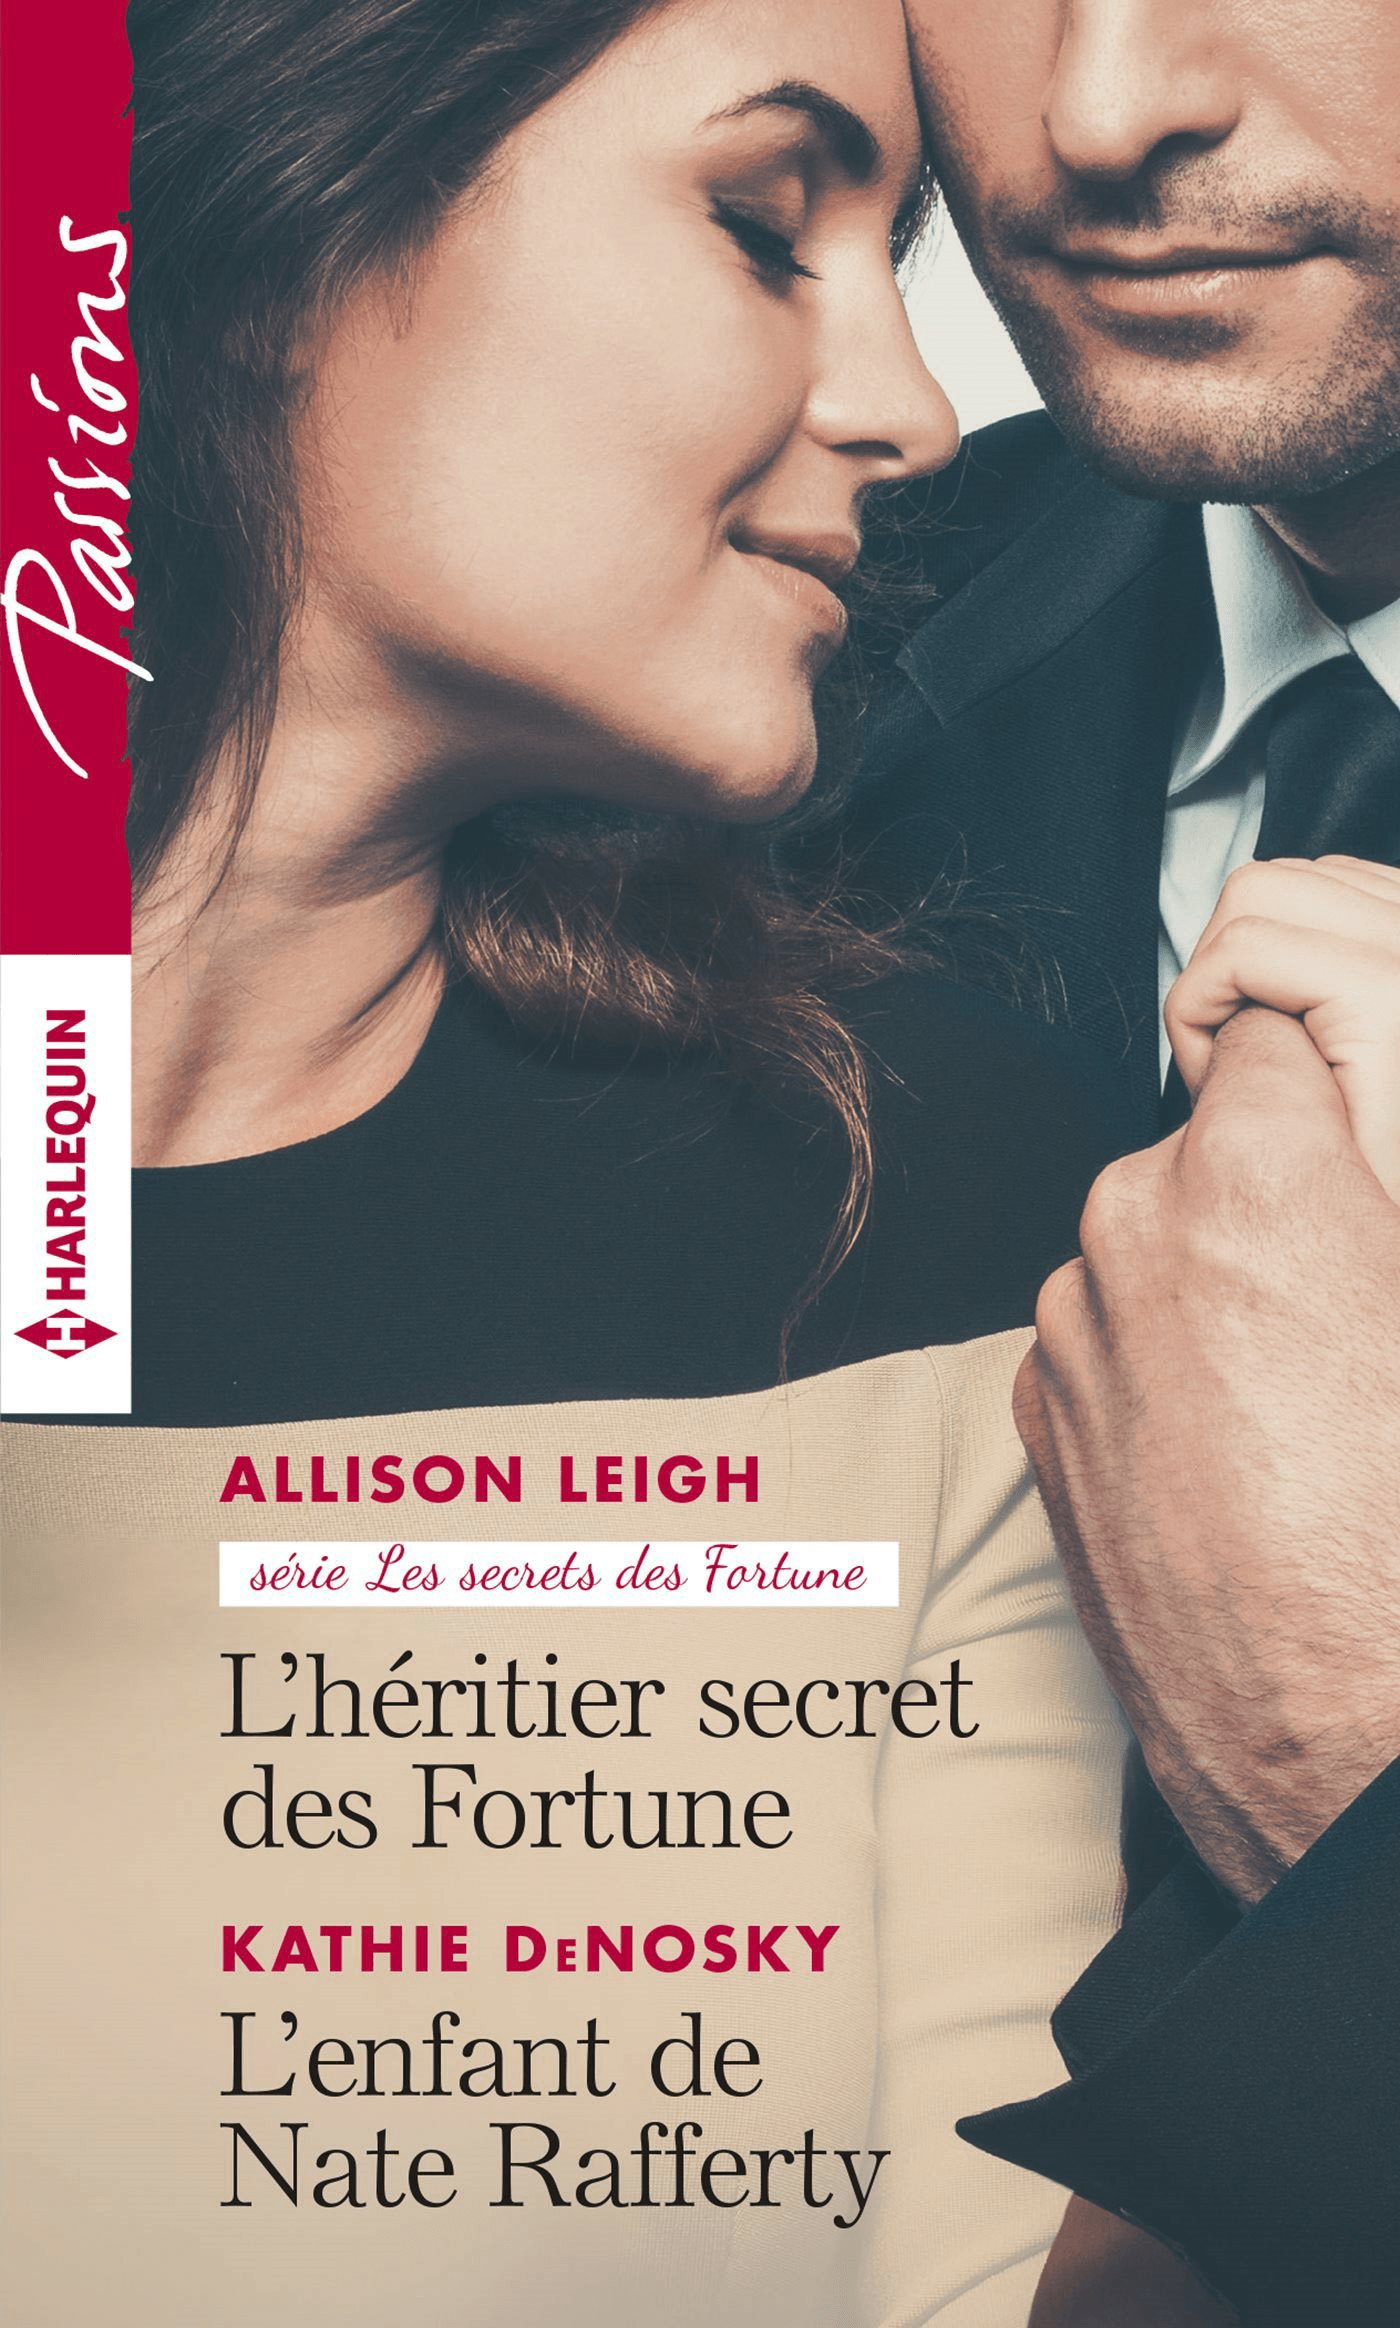 Couverture : Allison Leigh, L'héritier secret des Fortune, Harlequin